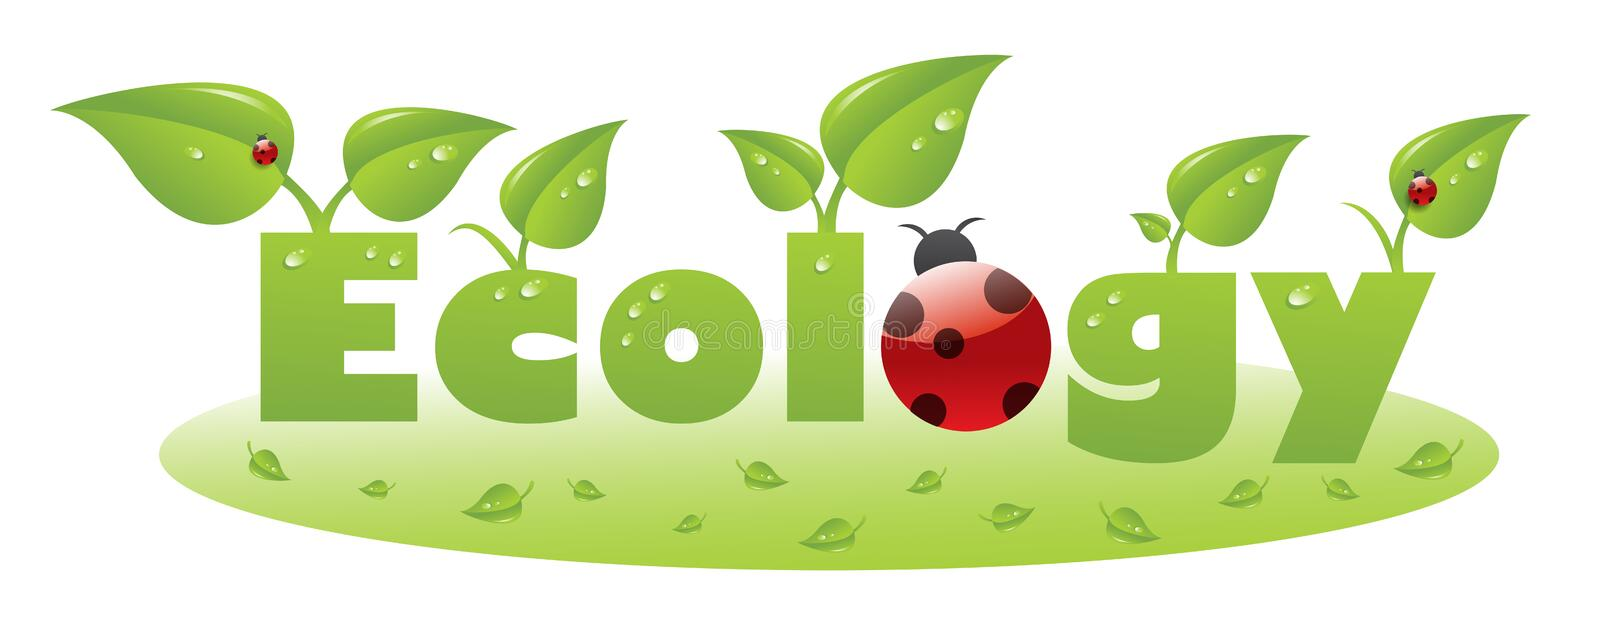 Ecology text caption with ladybug and green leaves vector illustration